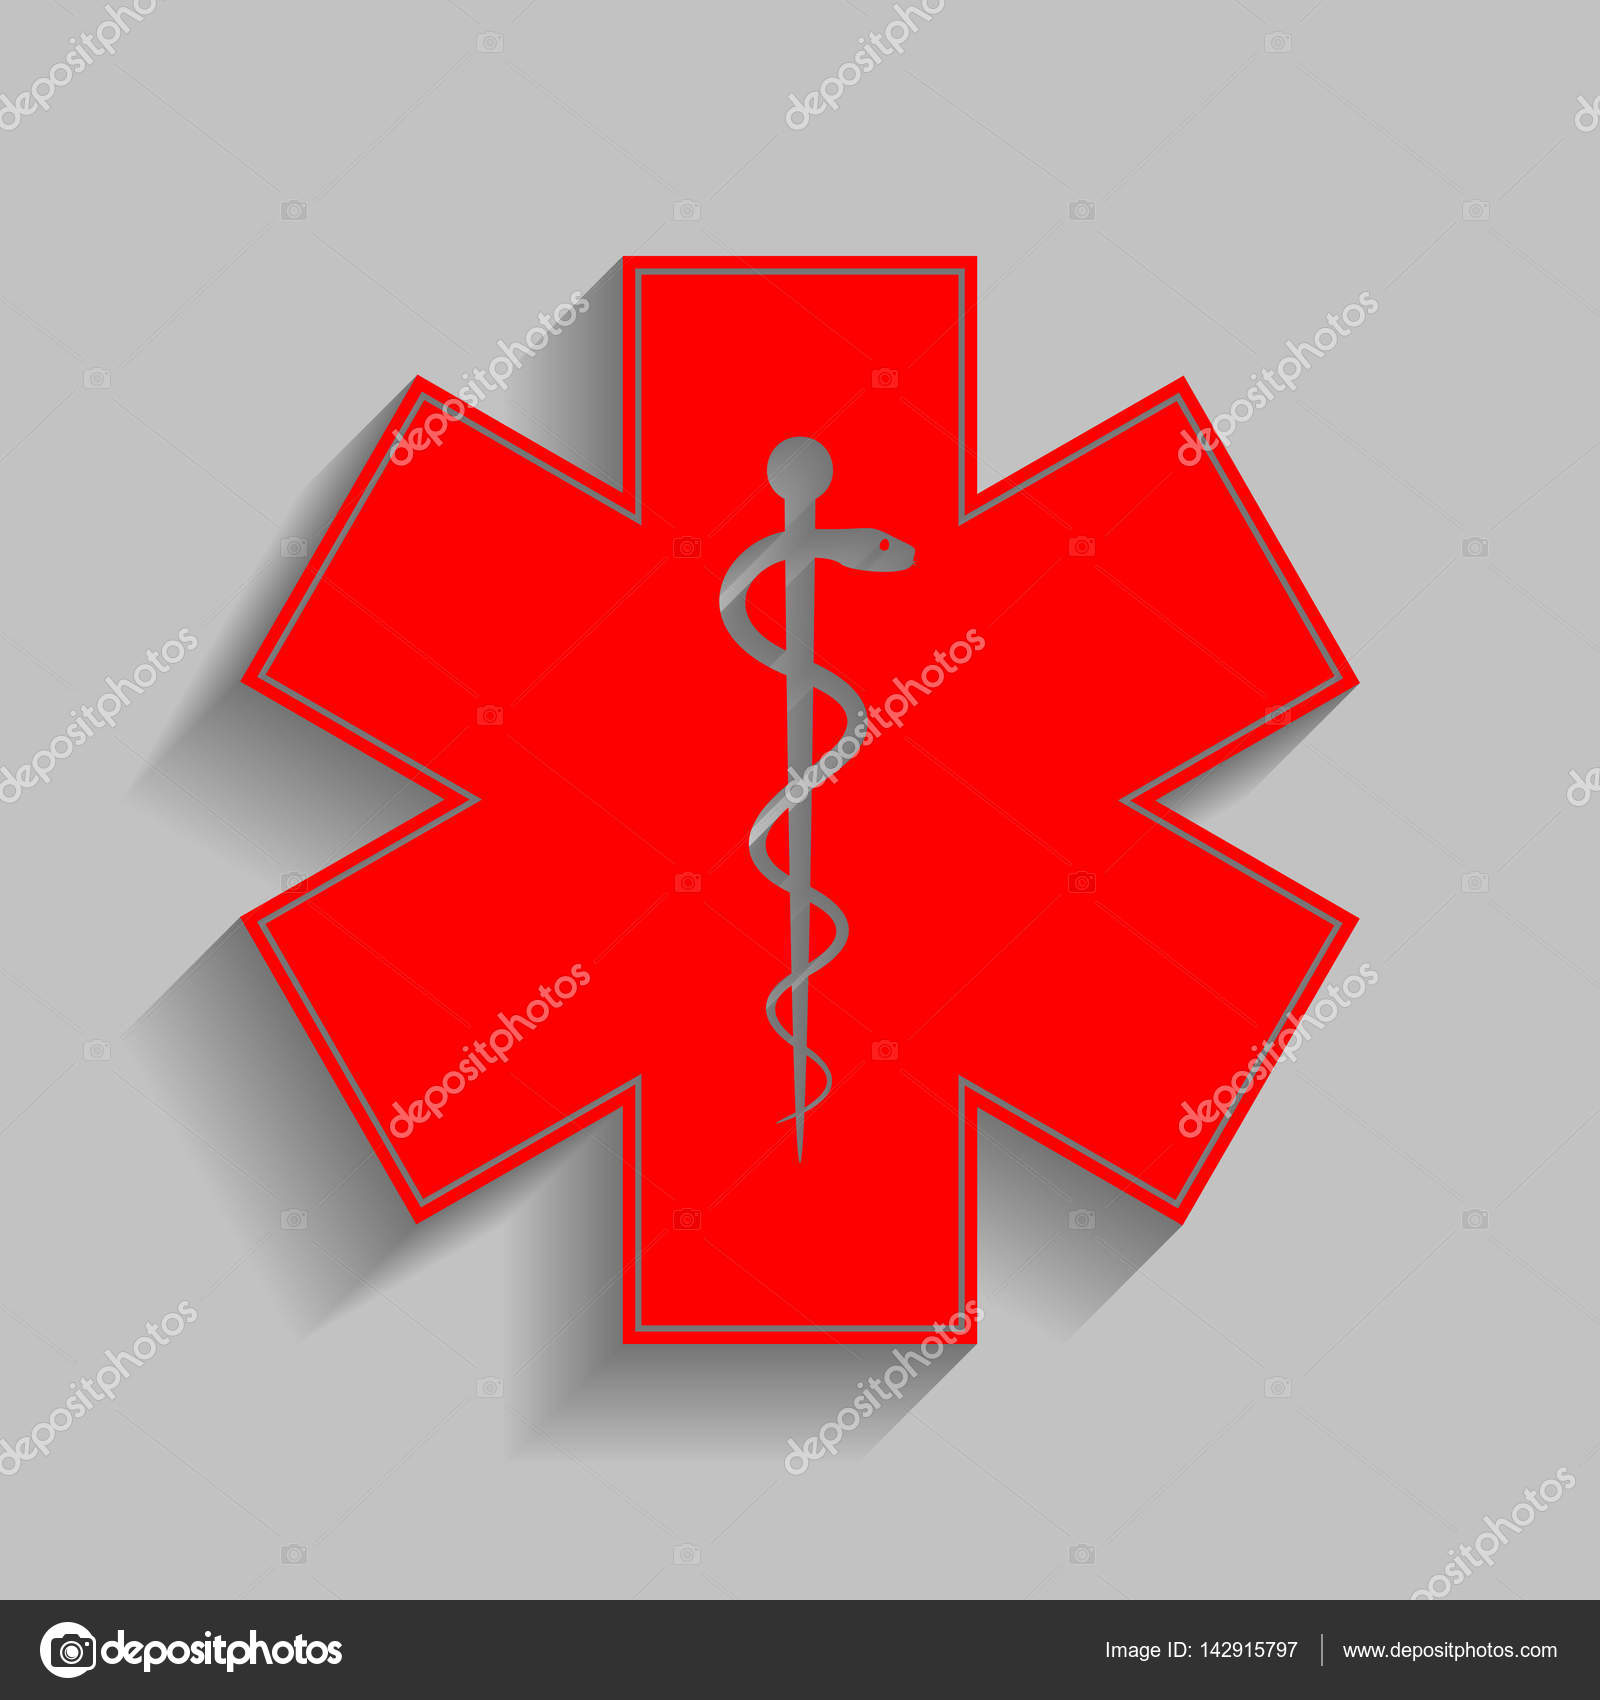 Medical Symbol Of The Emergency Or Star Of Life Vector Red Icon